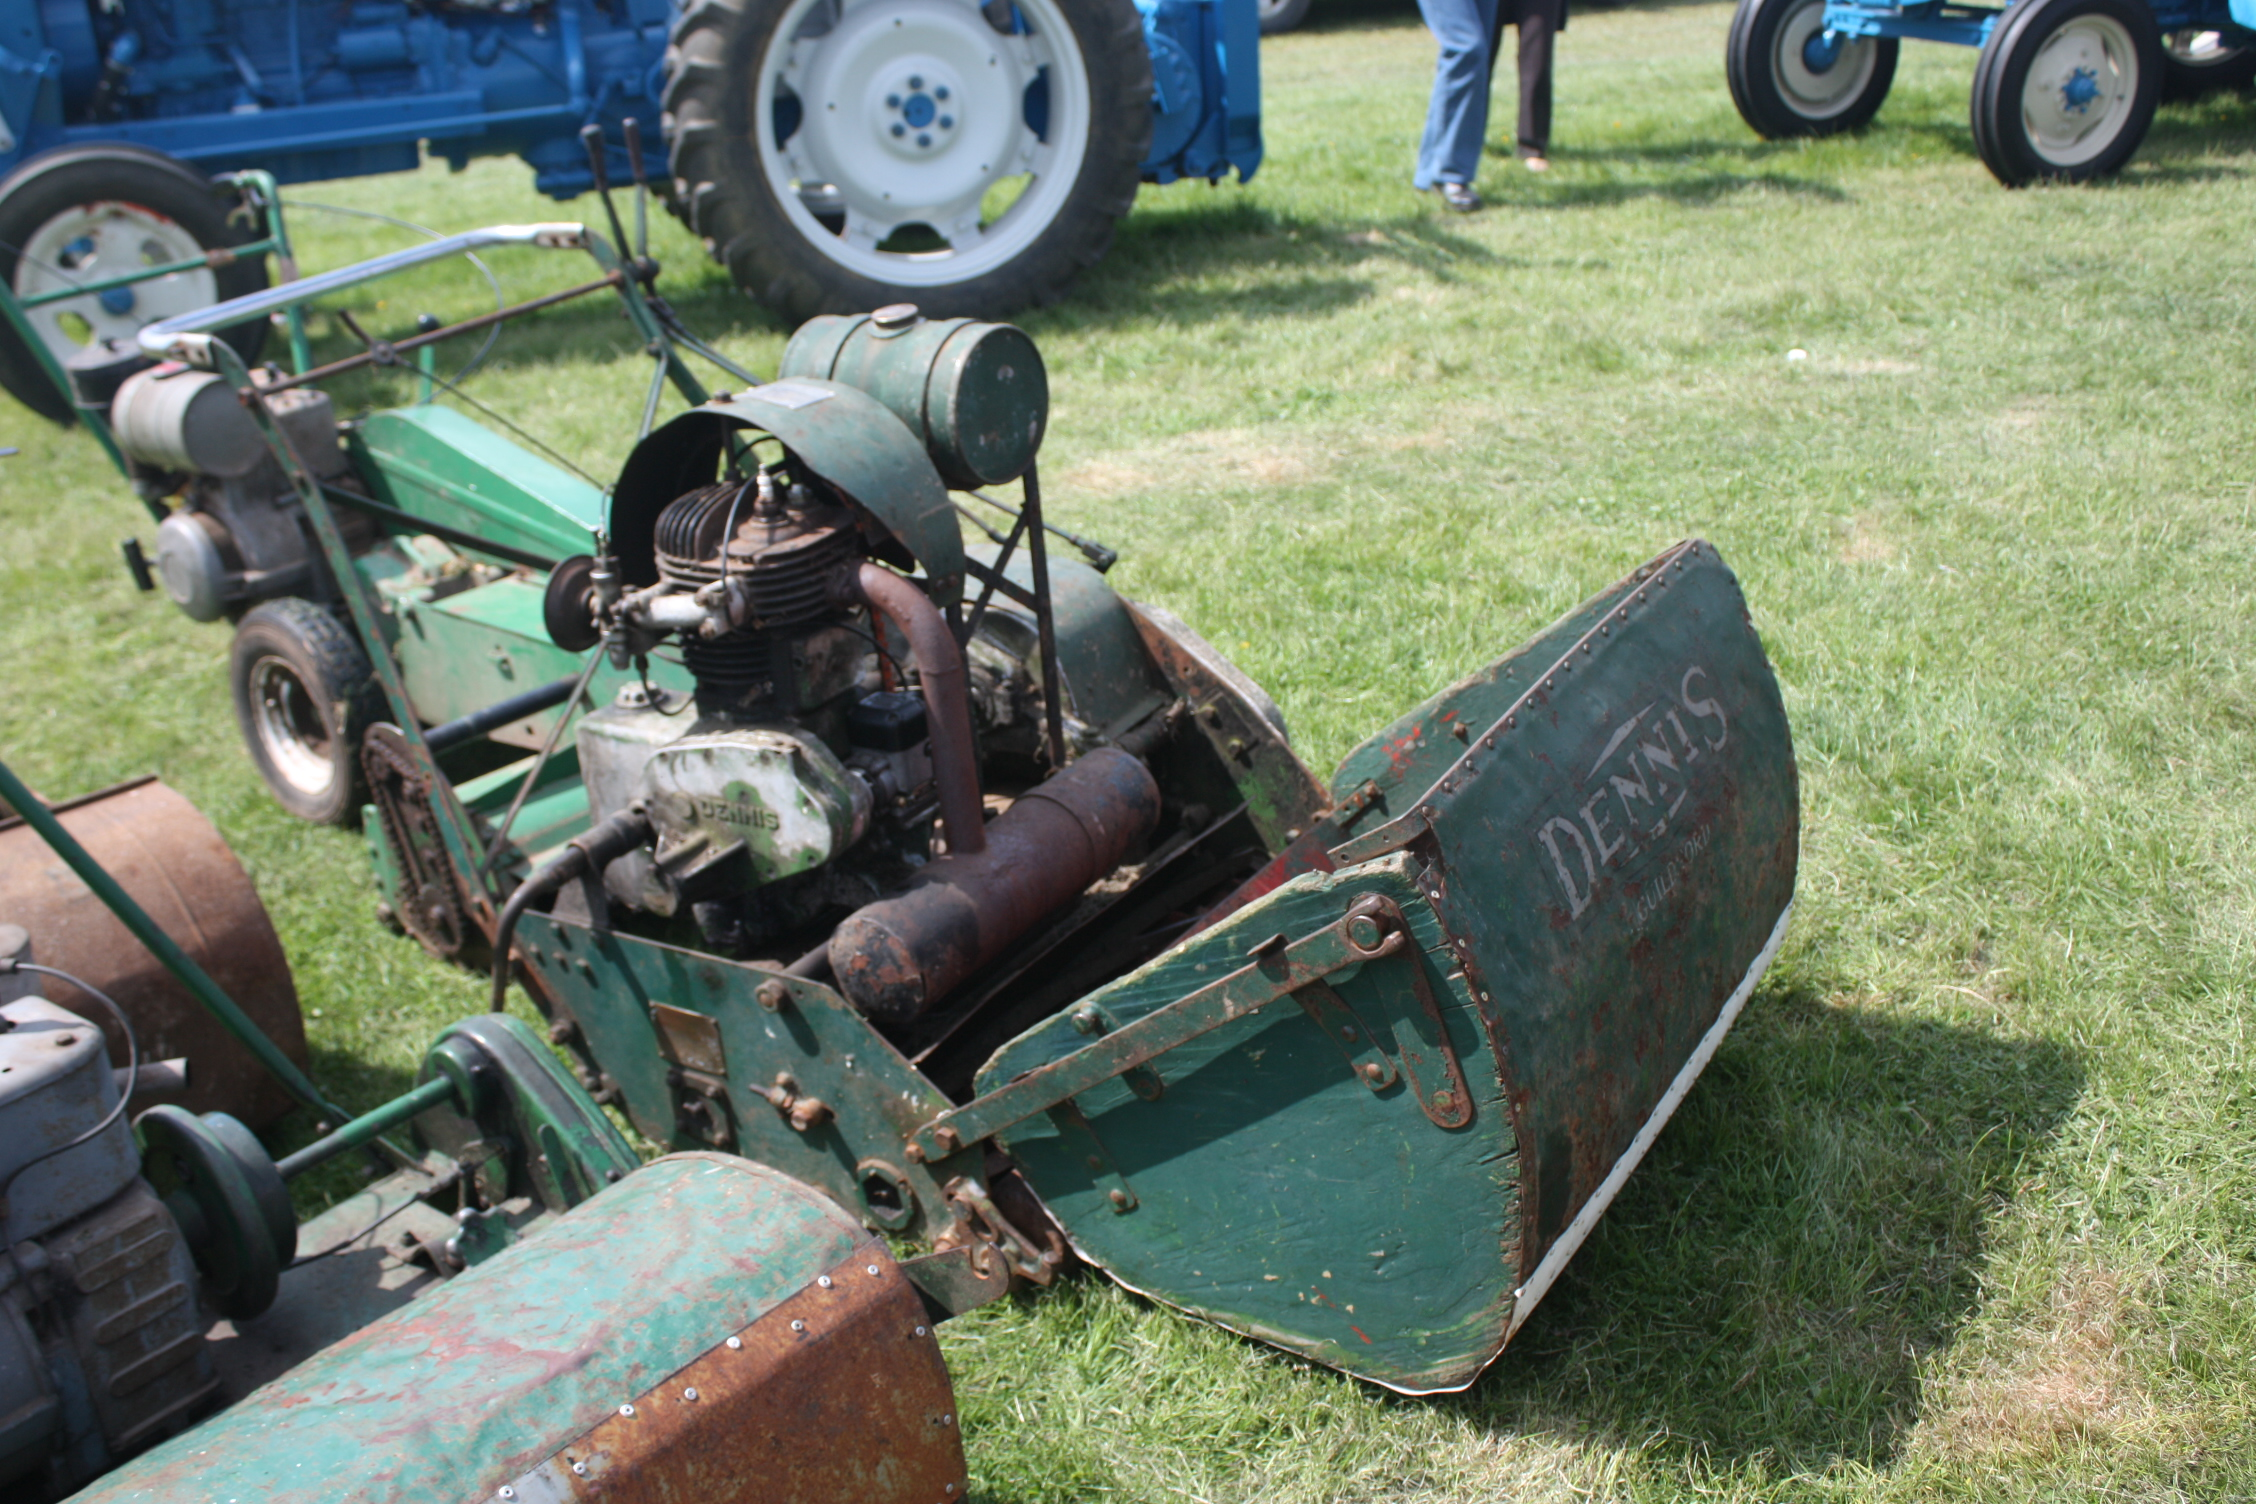 Lawn Mowers Tractor Amp Construction Plant Wiki The